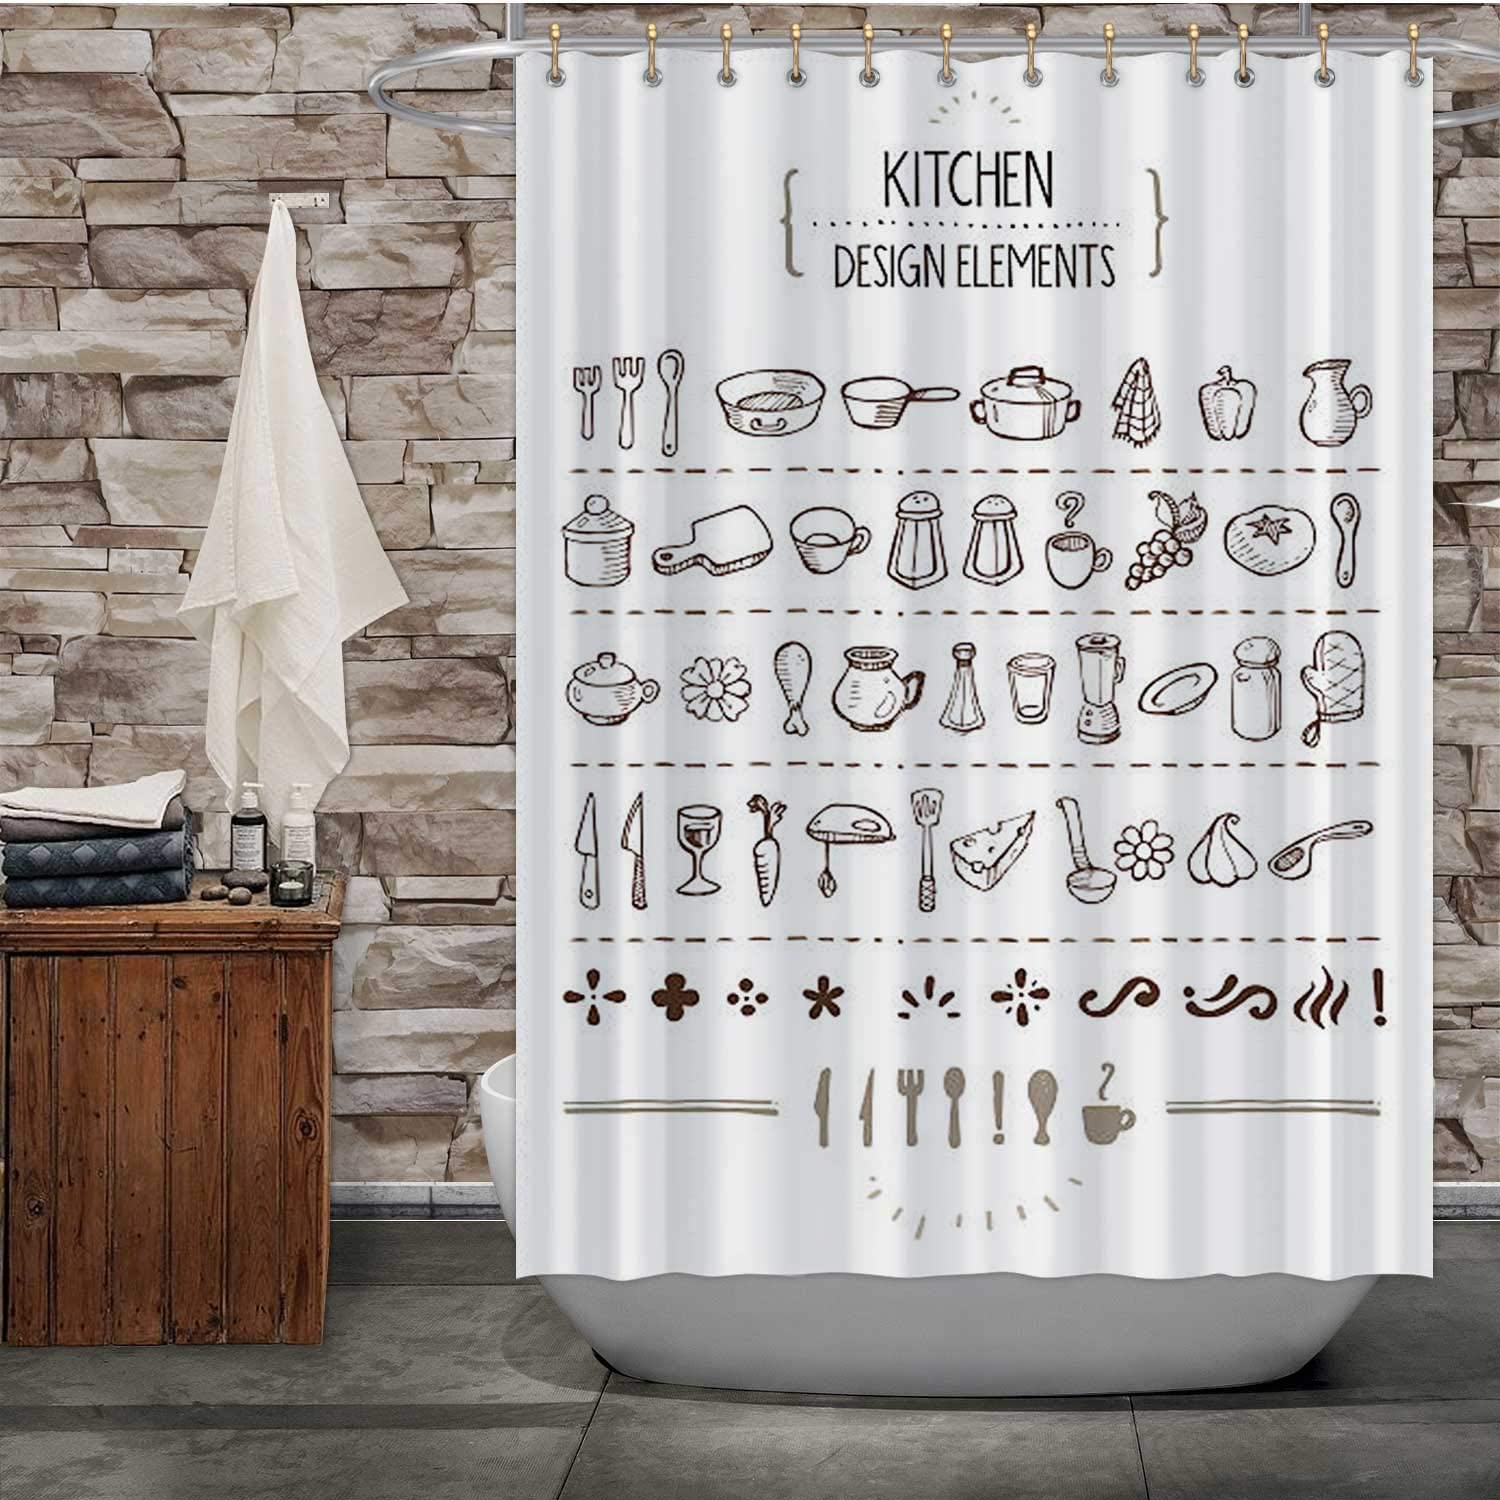 Tstyrea Kitchen Themed Doodles for Designers - Cooking,Fabric Shower Curtain Food for Bathroom 72X72in